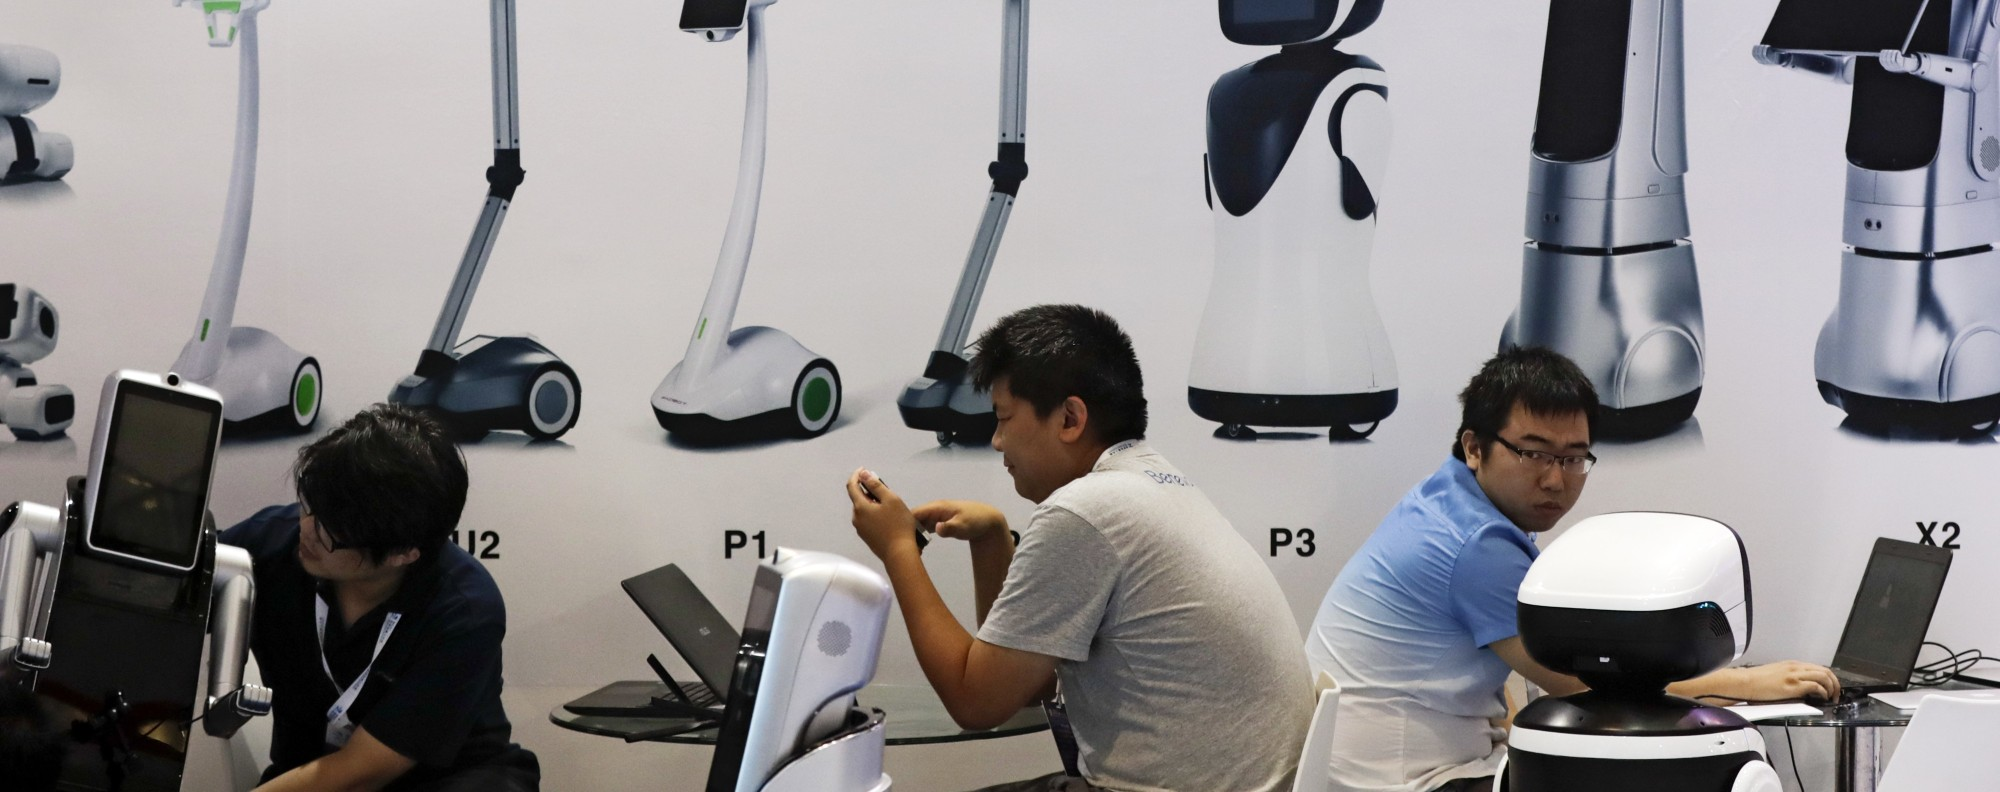 The World Robot Conference in Beijing. China Photo: AP